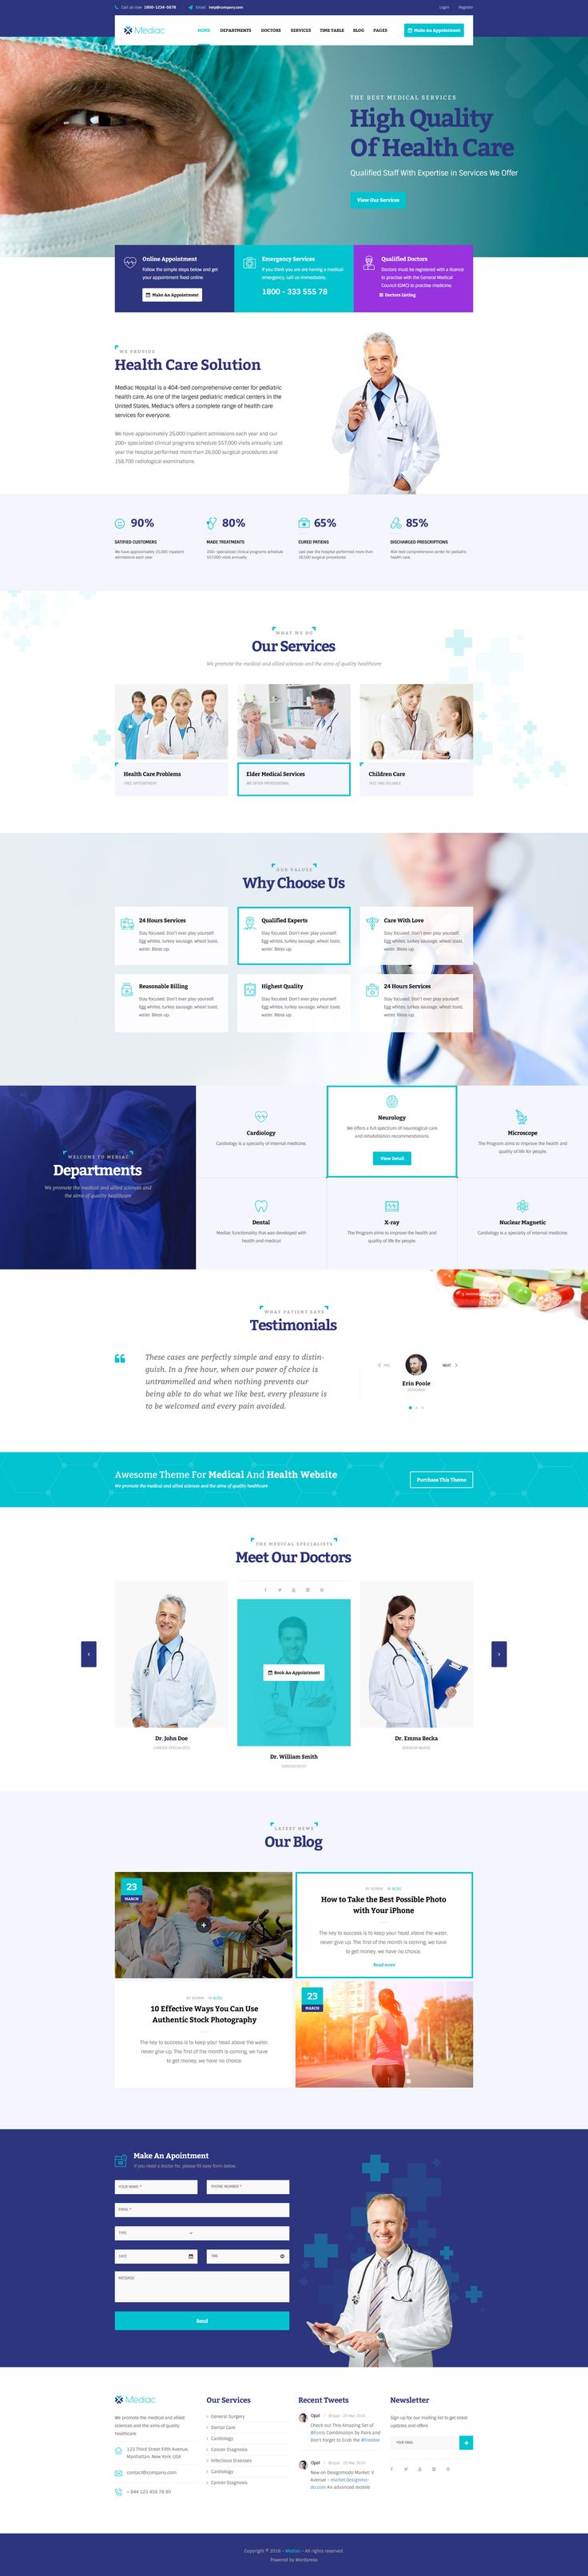 Mediac - Healthy Service WordPress Theme #megamenu #woocommerce • Download ➝ https://themeforest.net/item/mediac-healthy-service-wordpress-theme/18189009?ref=pxcr